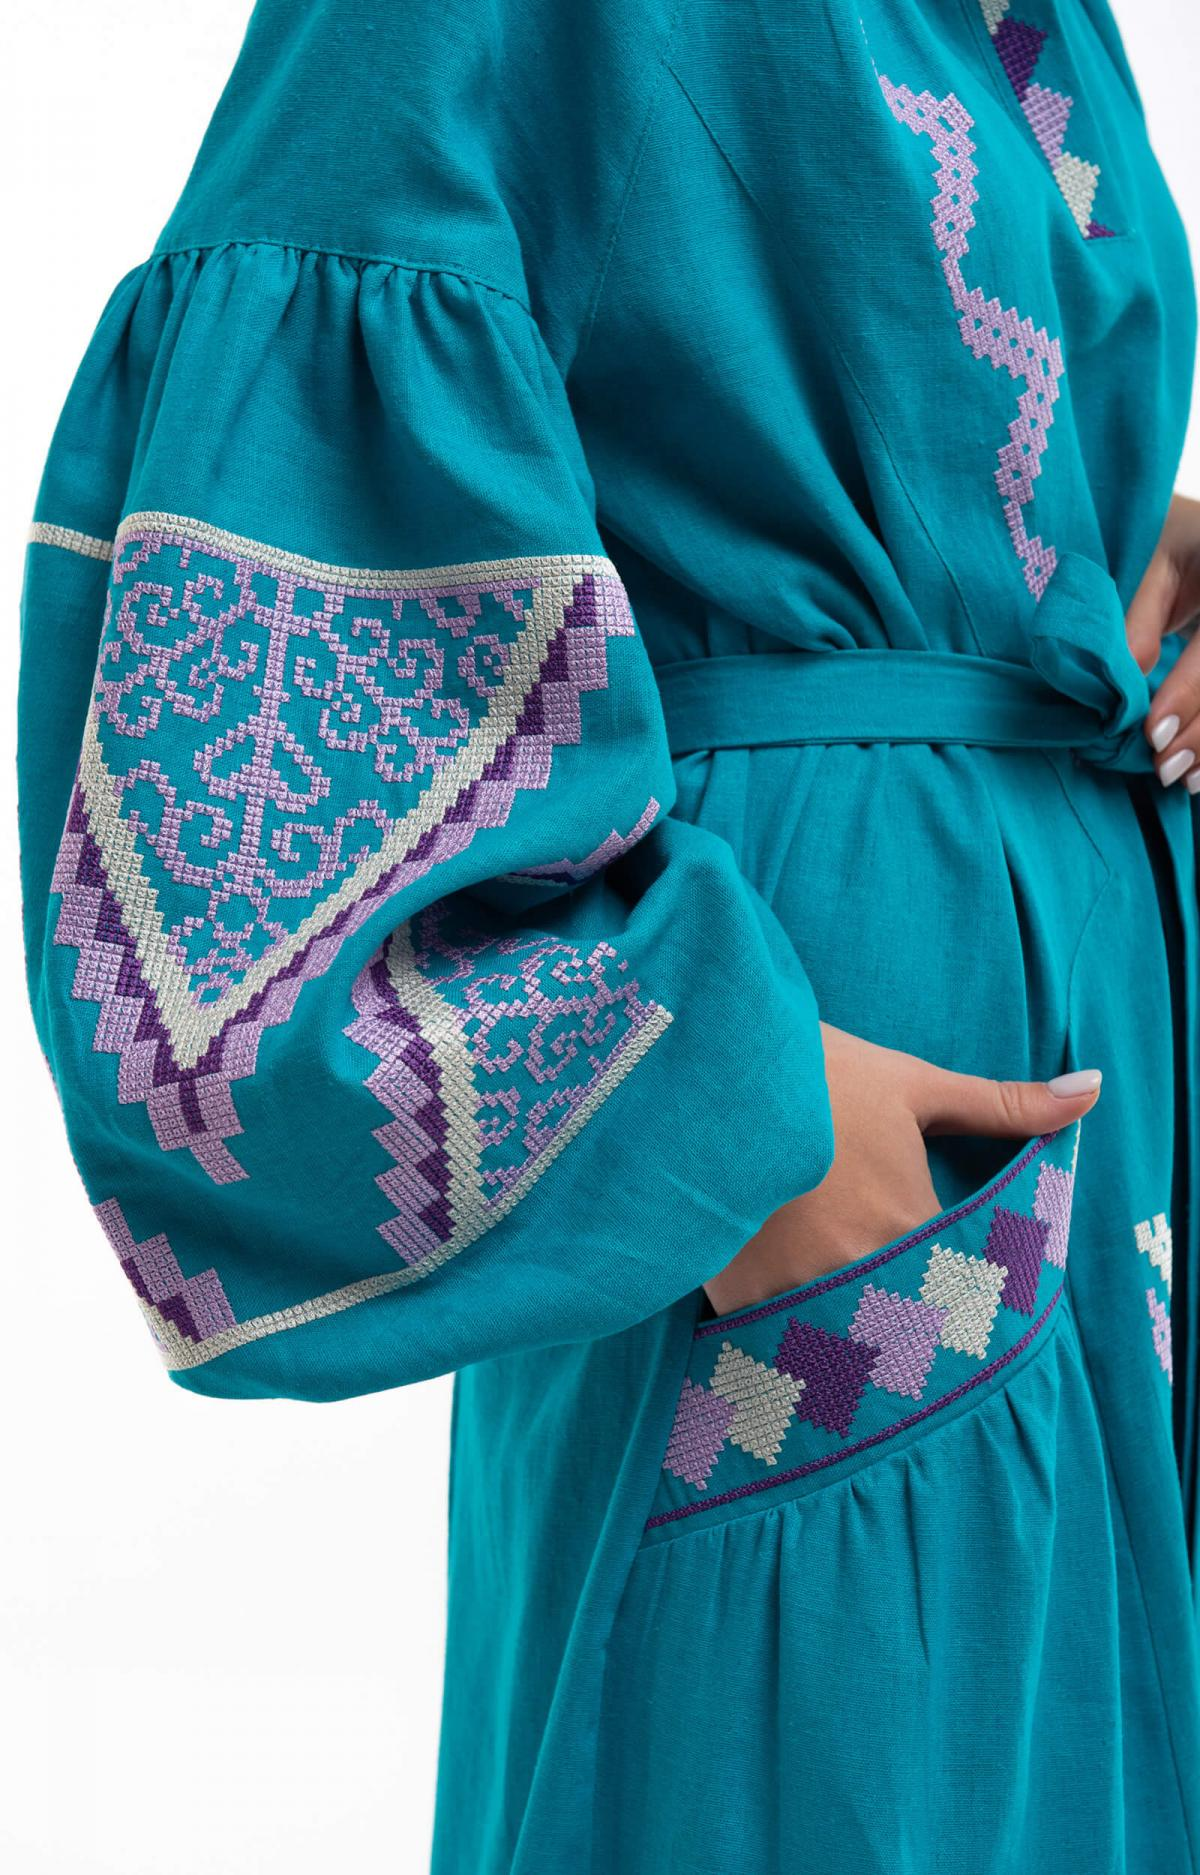 Embroidered long dress of turquoise color. Photo №2. | Narodnyi dim Ukraine